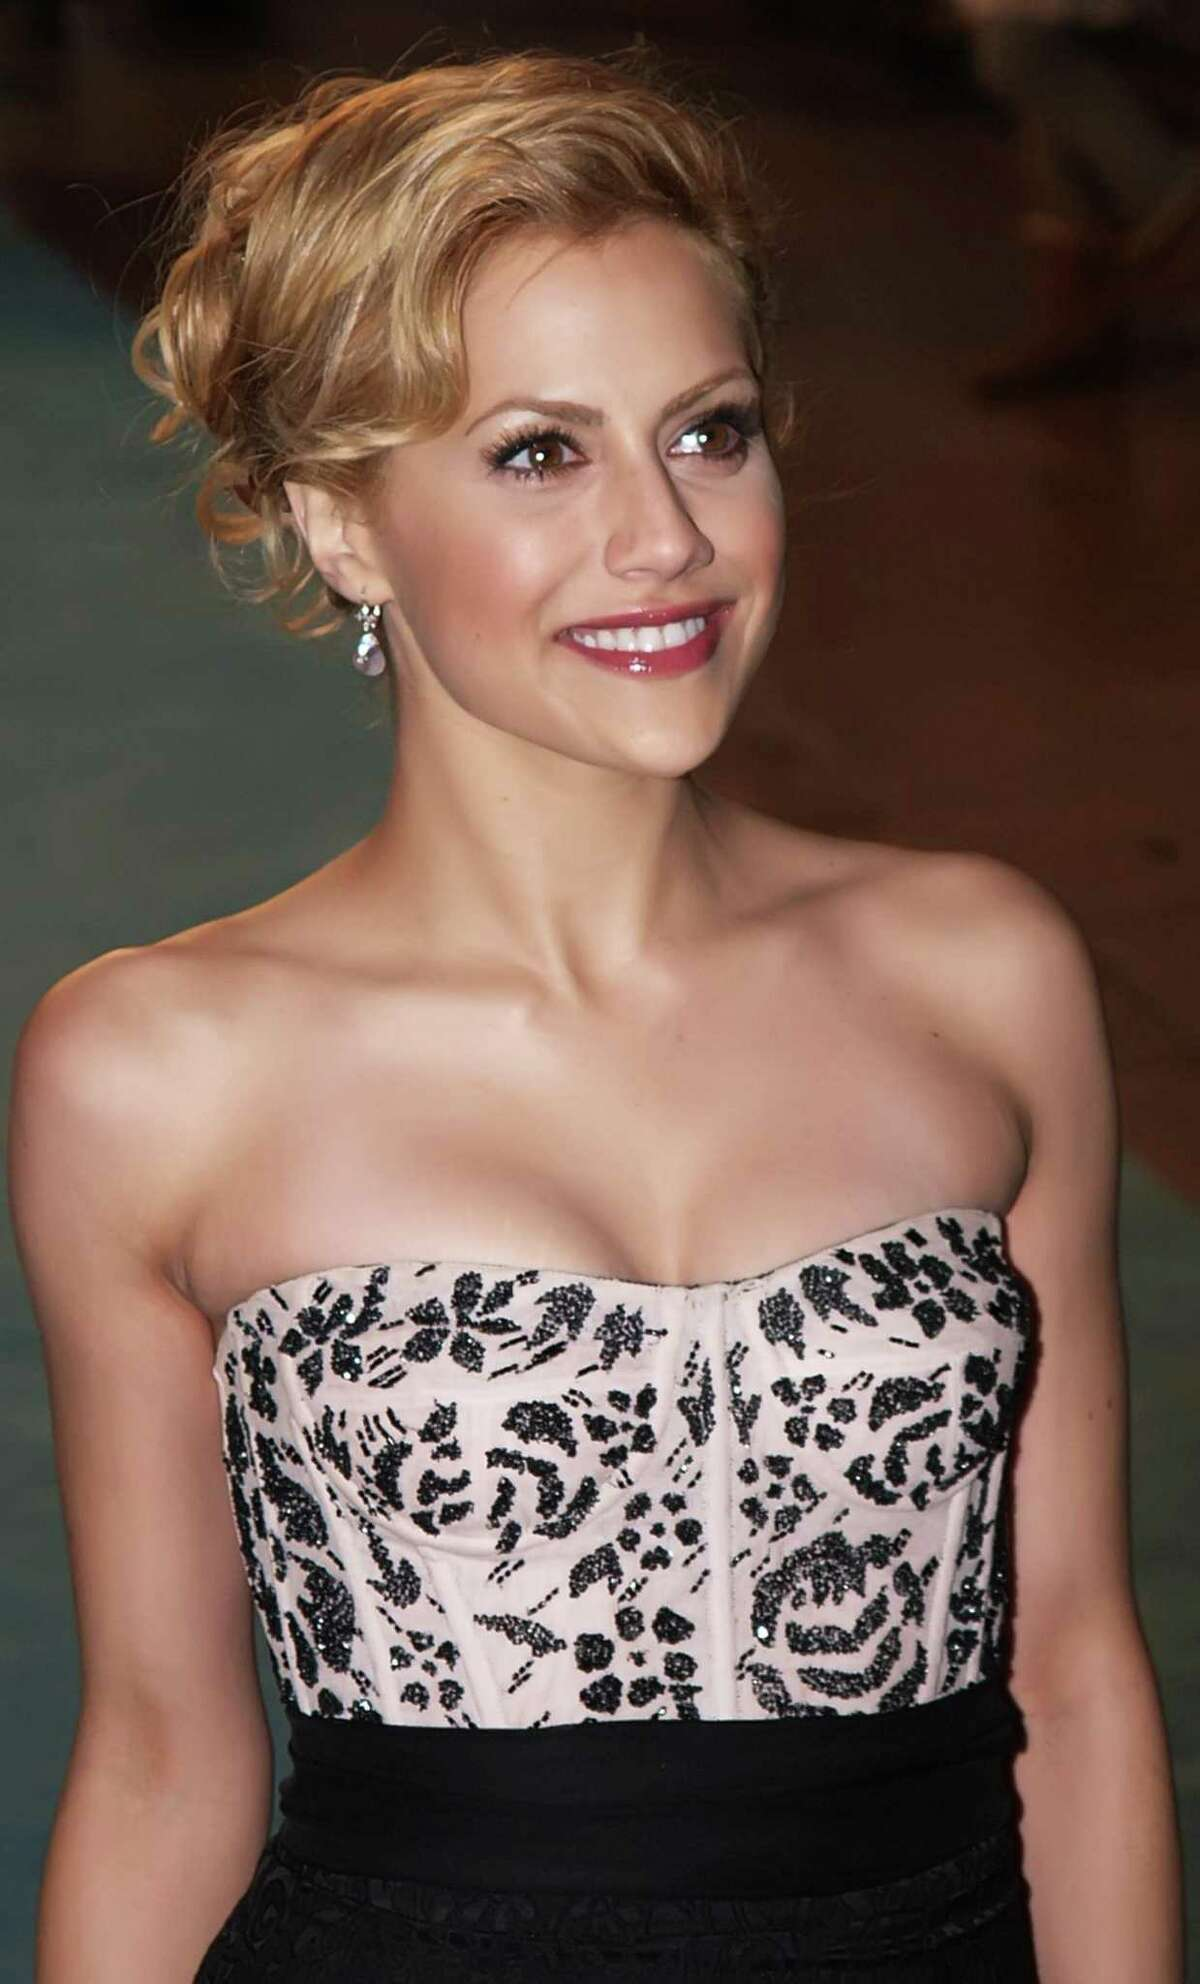 FILE - In this Nov. 26, 2006 file photo, U.S. actress Brittany Murphy arrives in Leicester Square for the European premiere of her latest film